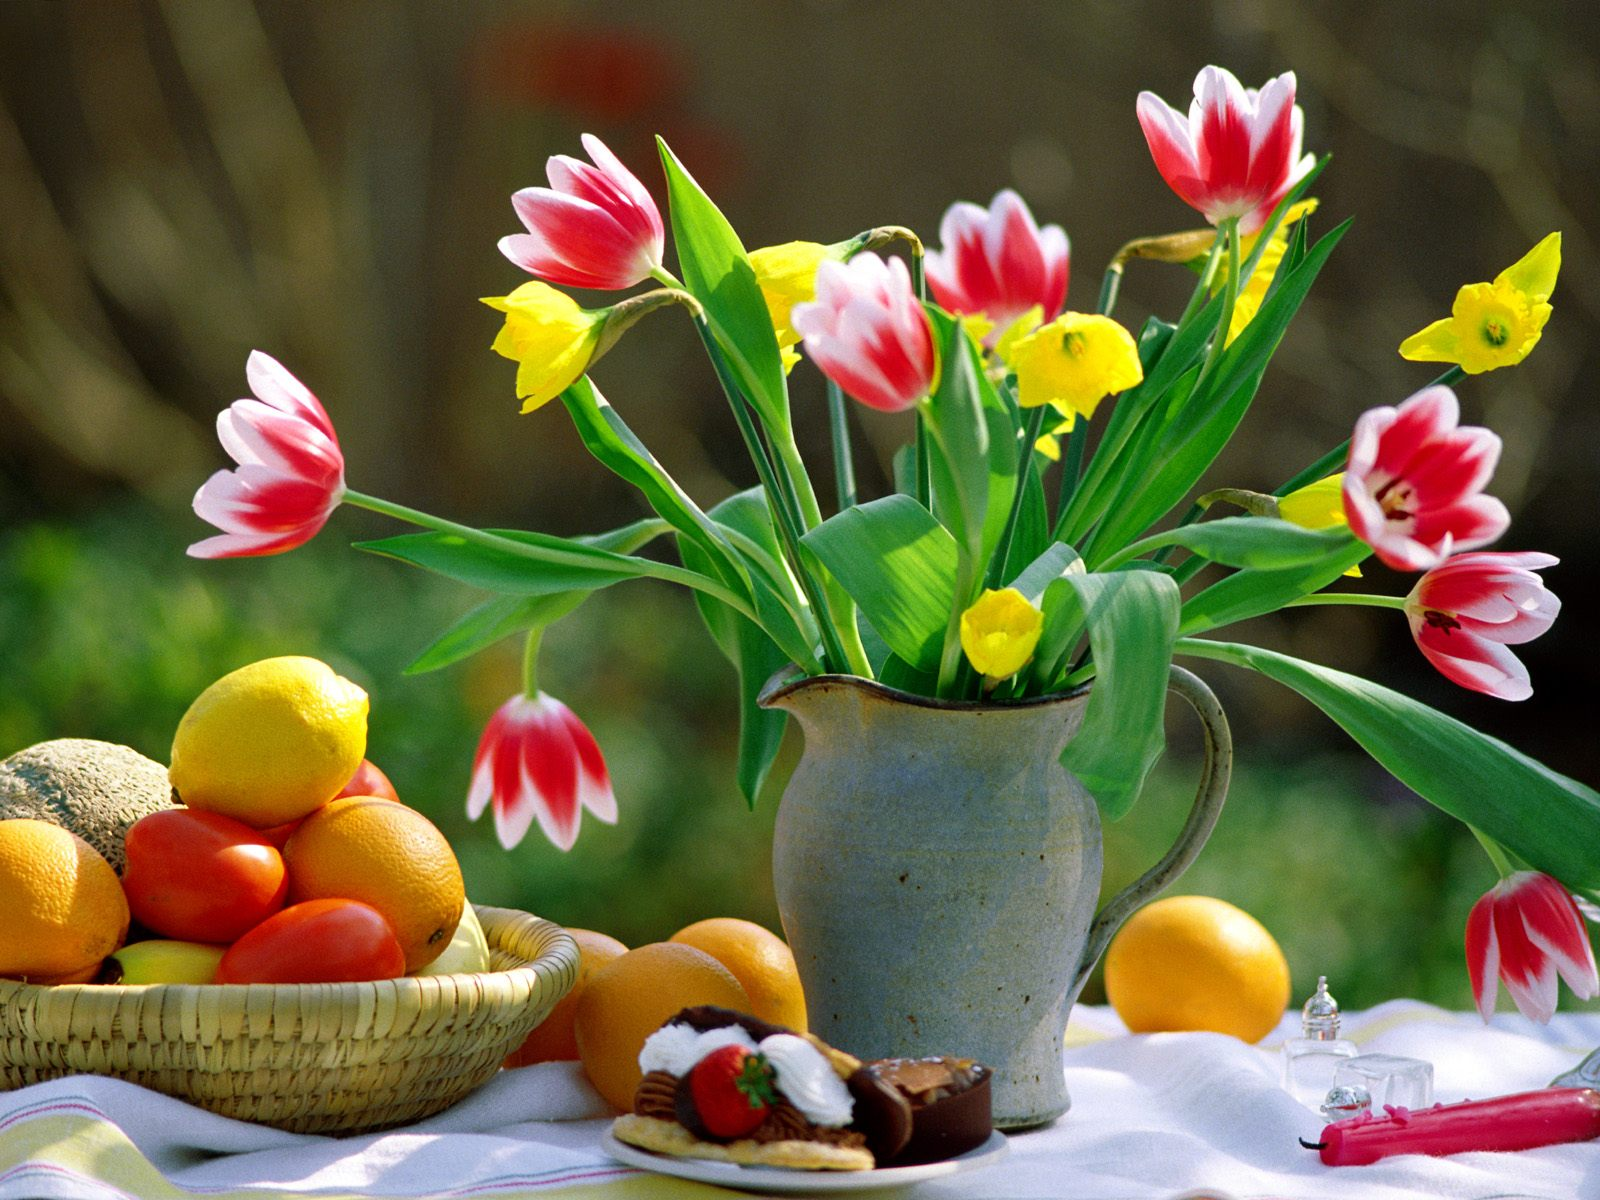 http://4.bp.blogspot.com/-x_4hEPglfSY/UAFQh9fJ5LI/AAAAAAAAACY/gy0tgsd6eGg/s1600/Beautiful-Flowers-wallpapers1.jpg